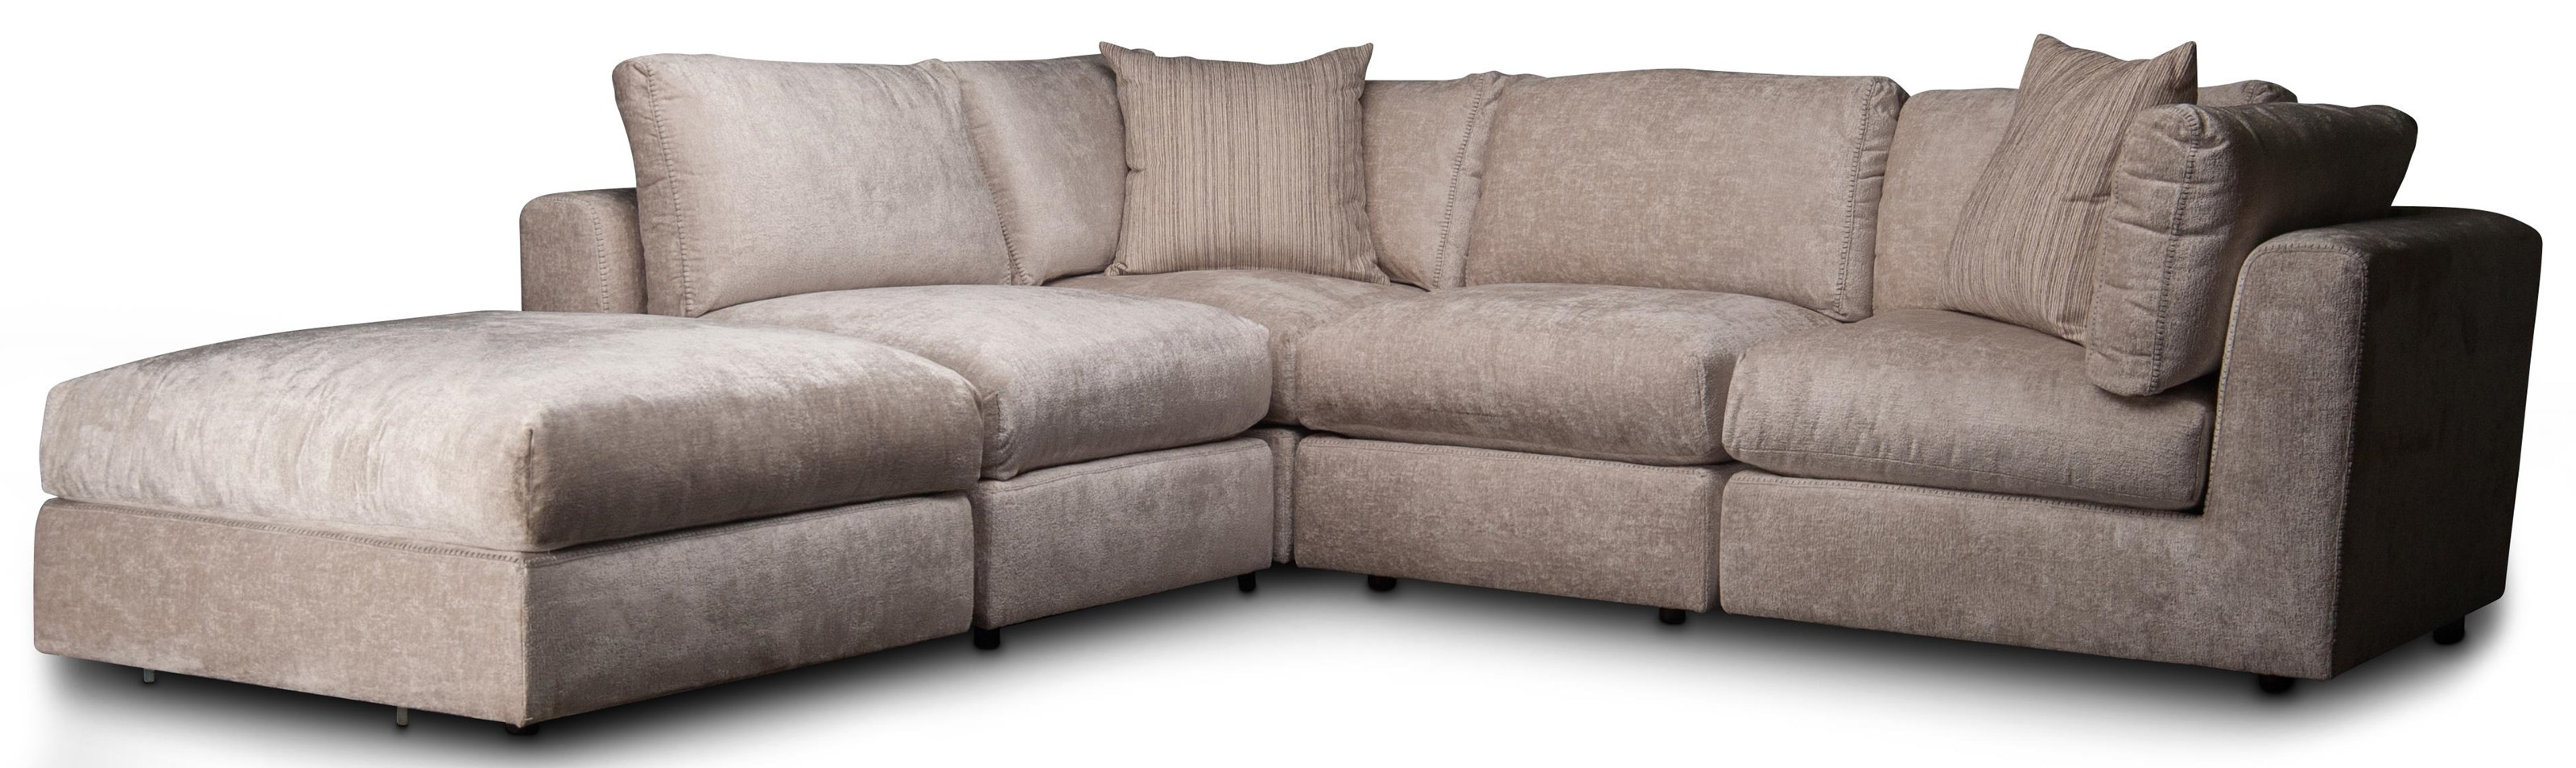 Oasis Oasis Sectional Sofa by Bernhardt at Morris Home